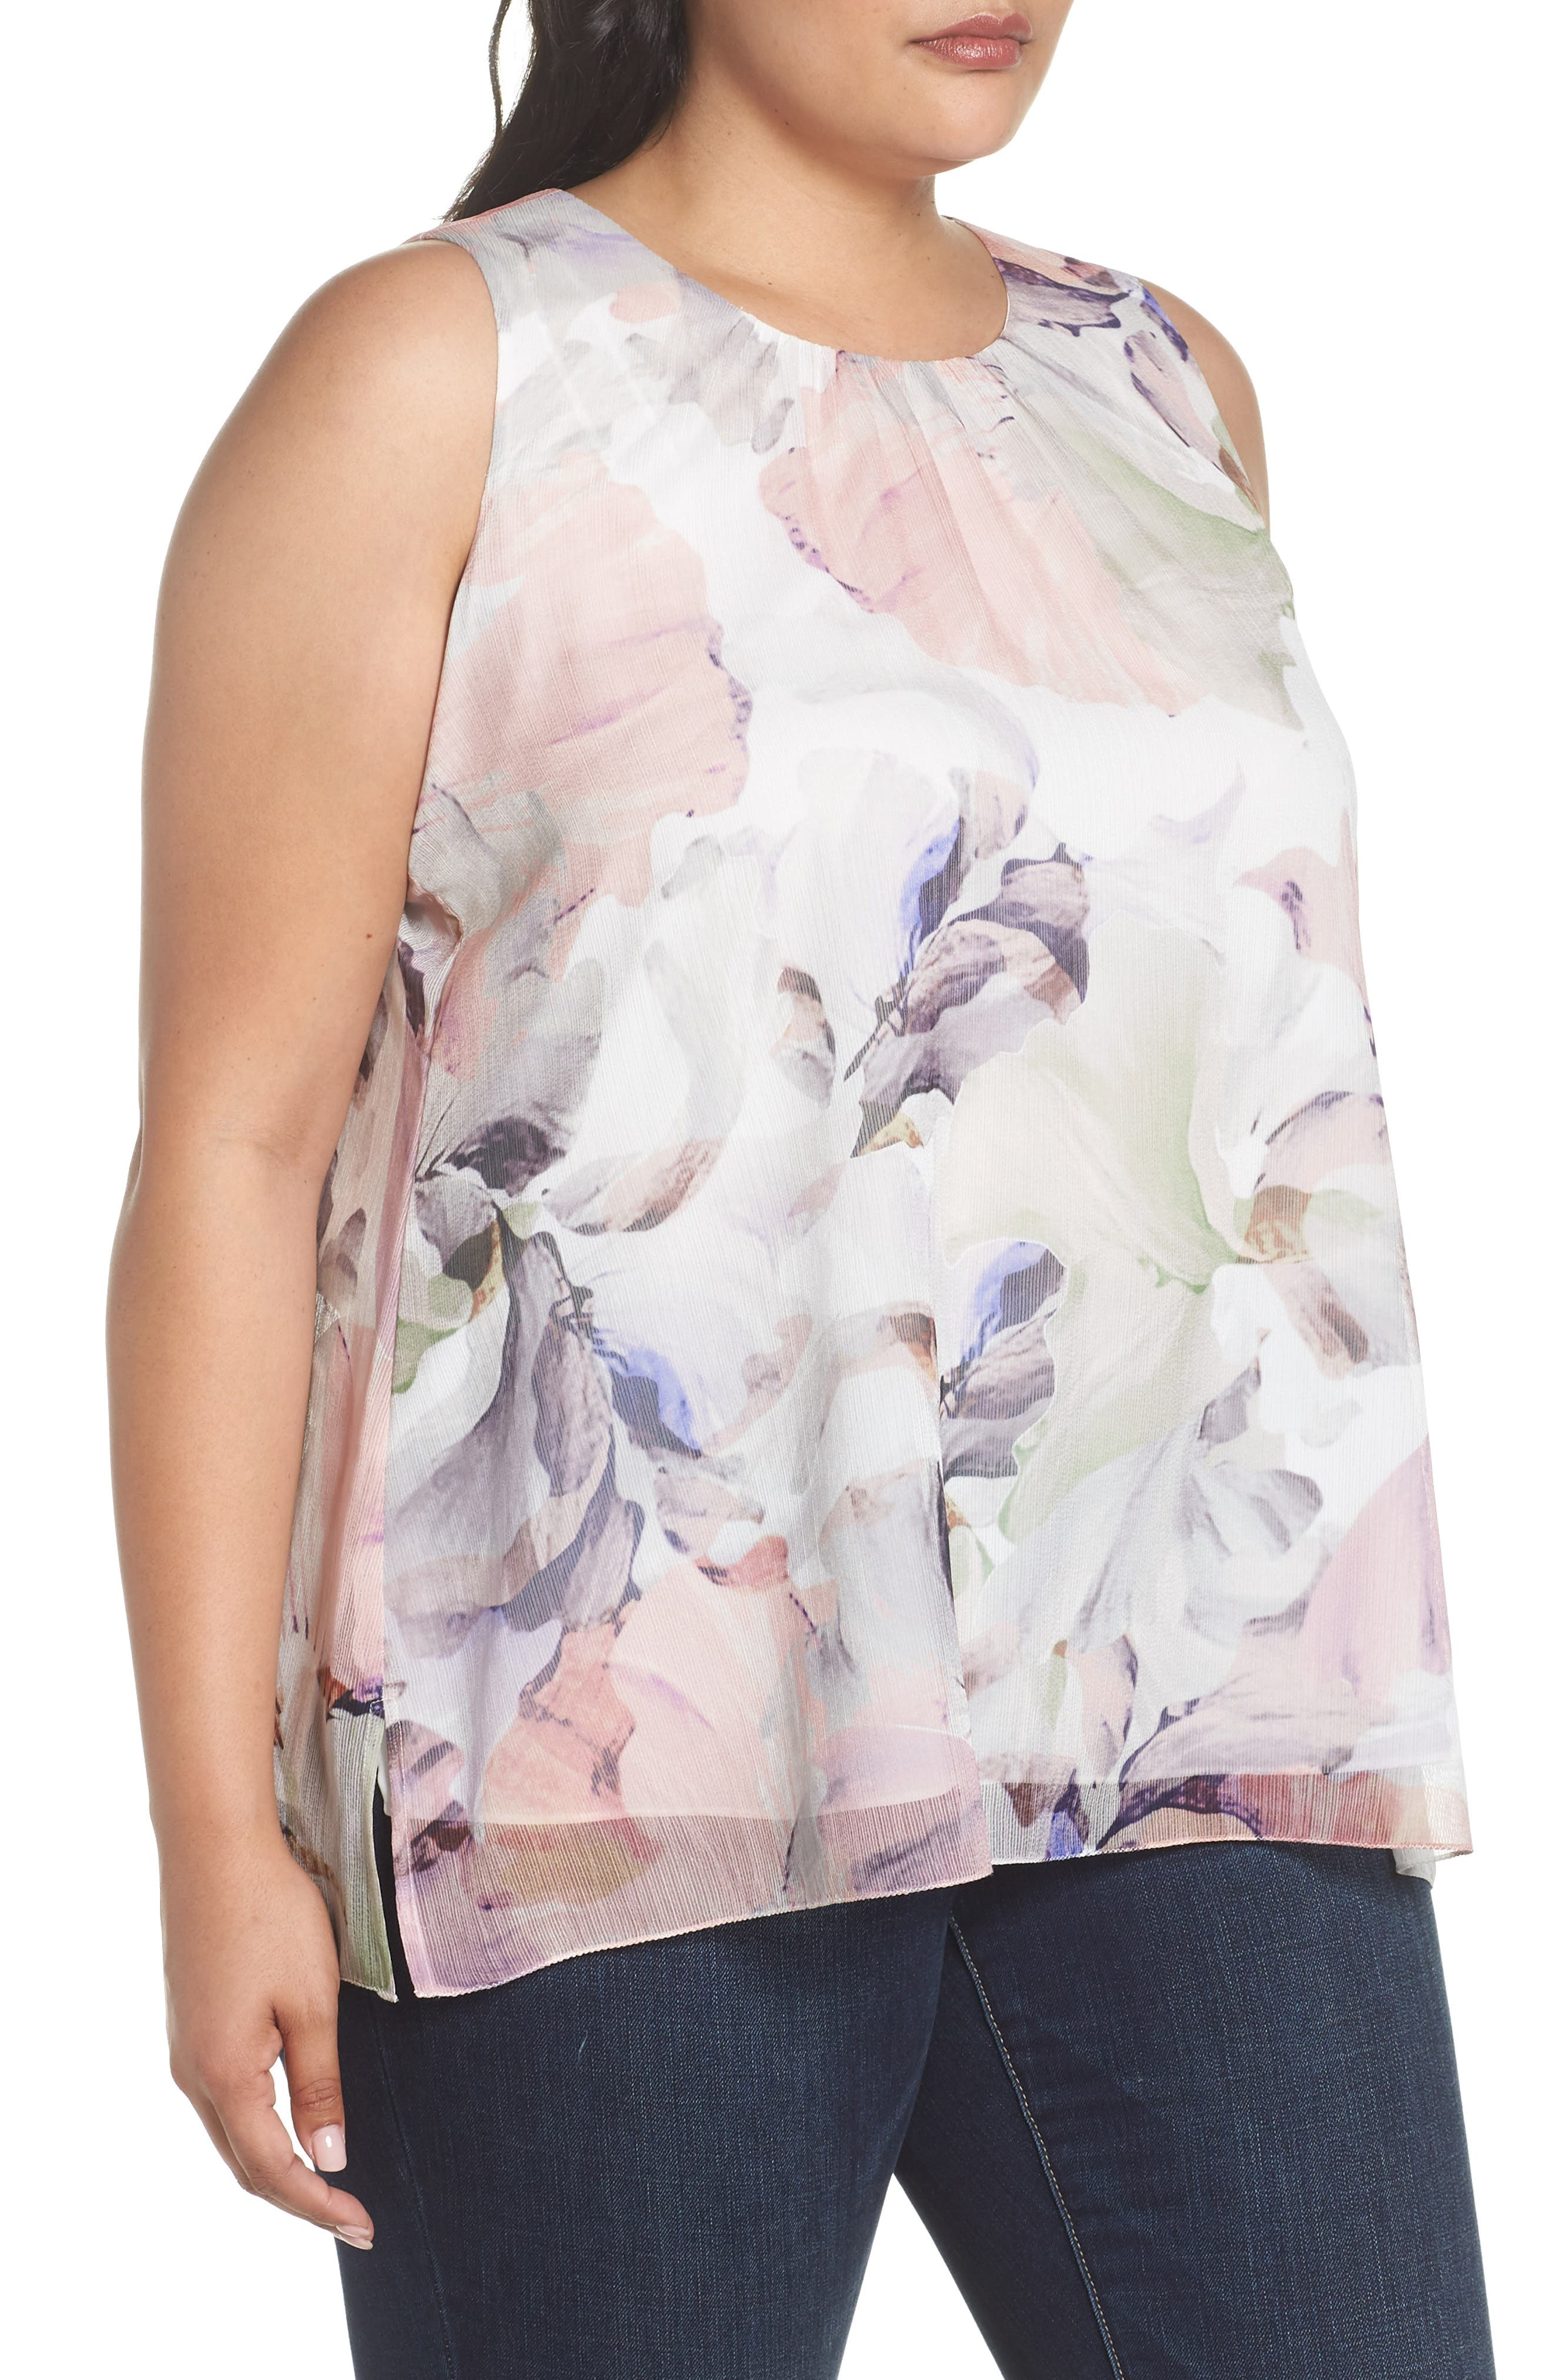 VINCE CAMUTO,                             Diffused Blooms Blouse,                             Alternate thumbnail 3, color,                             903